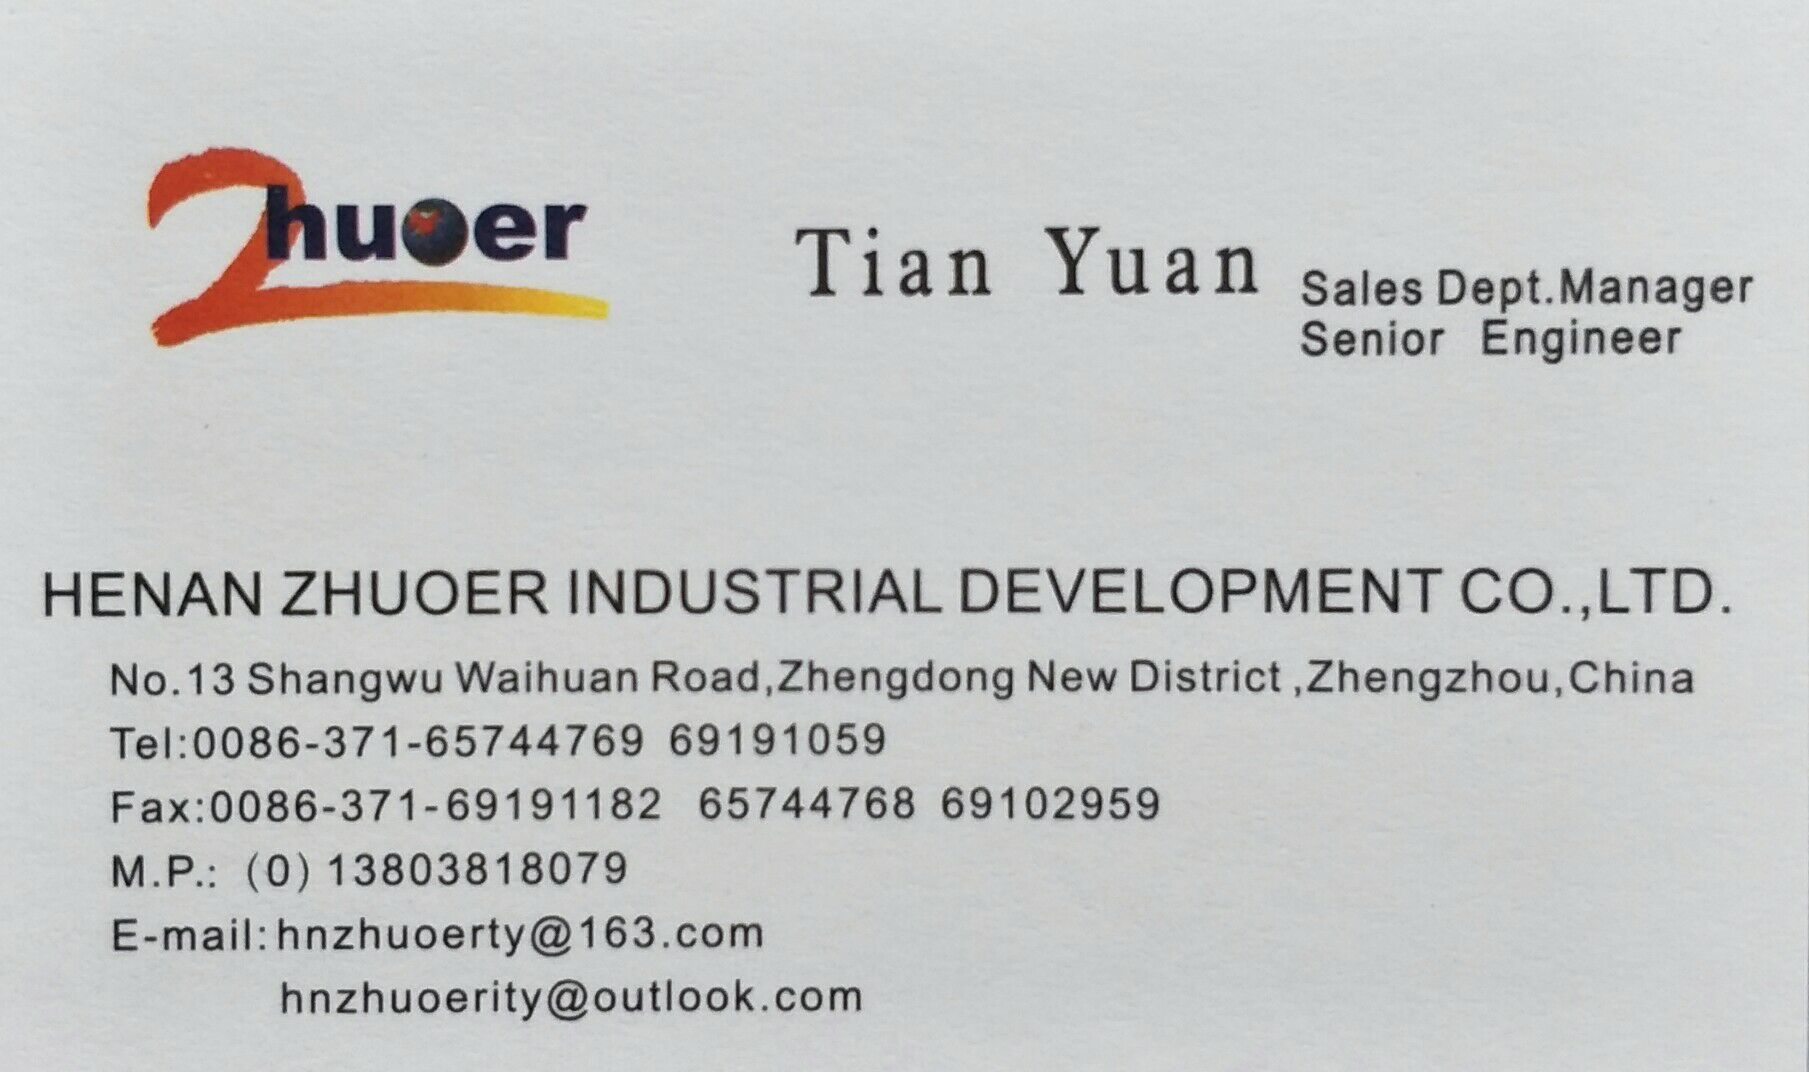 HENAN ZHUOER INDUSTRIAL DEVELOPMENT CO.,LTD